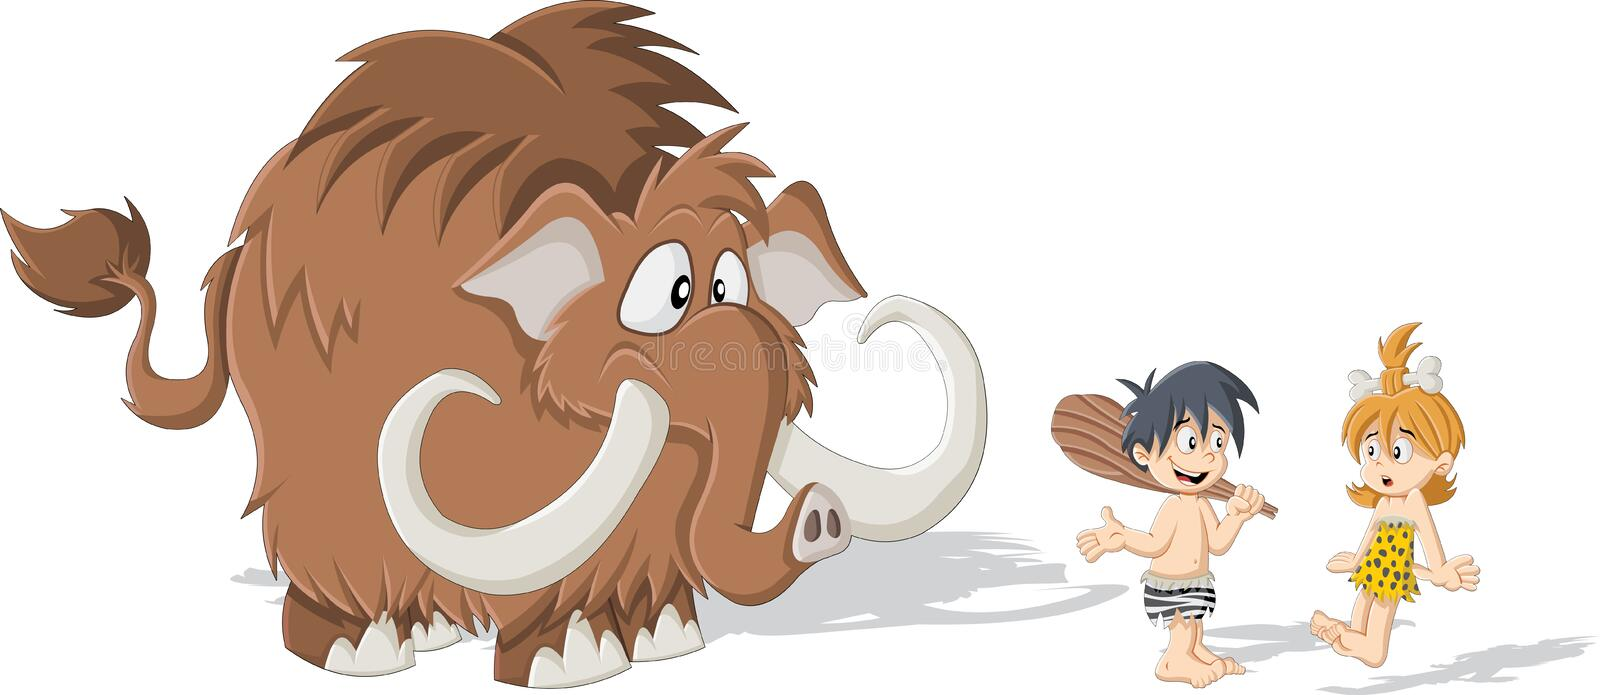 Cartoon caveman and cave woman with a Mammoth royalty free illustration